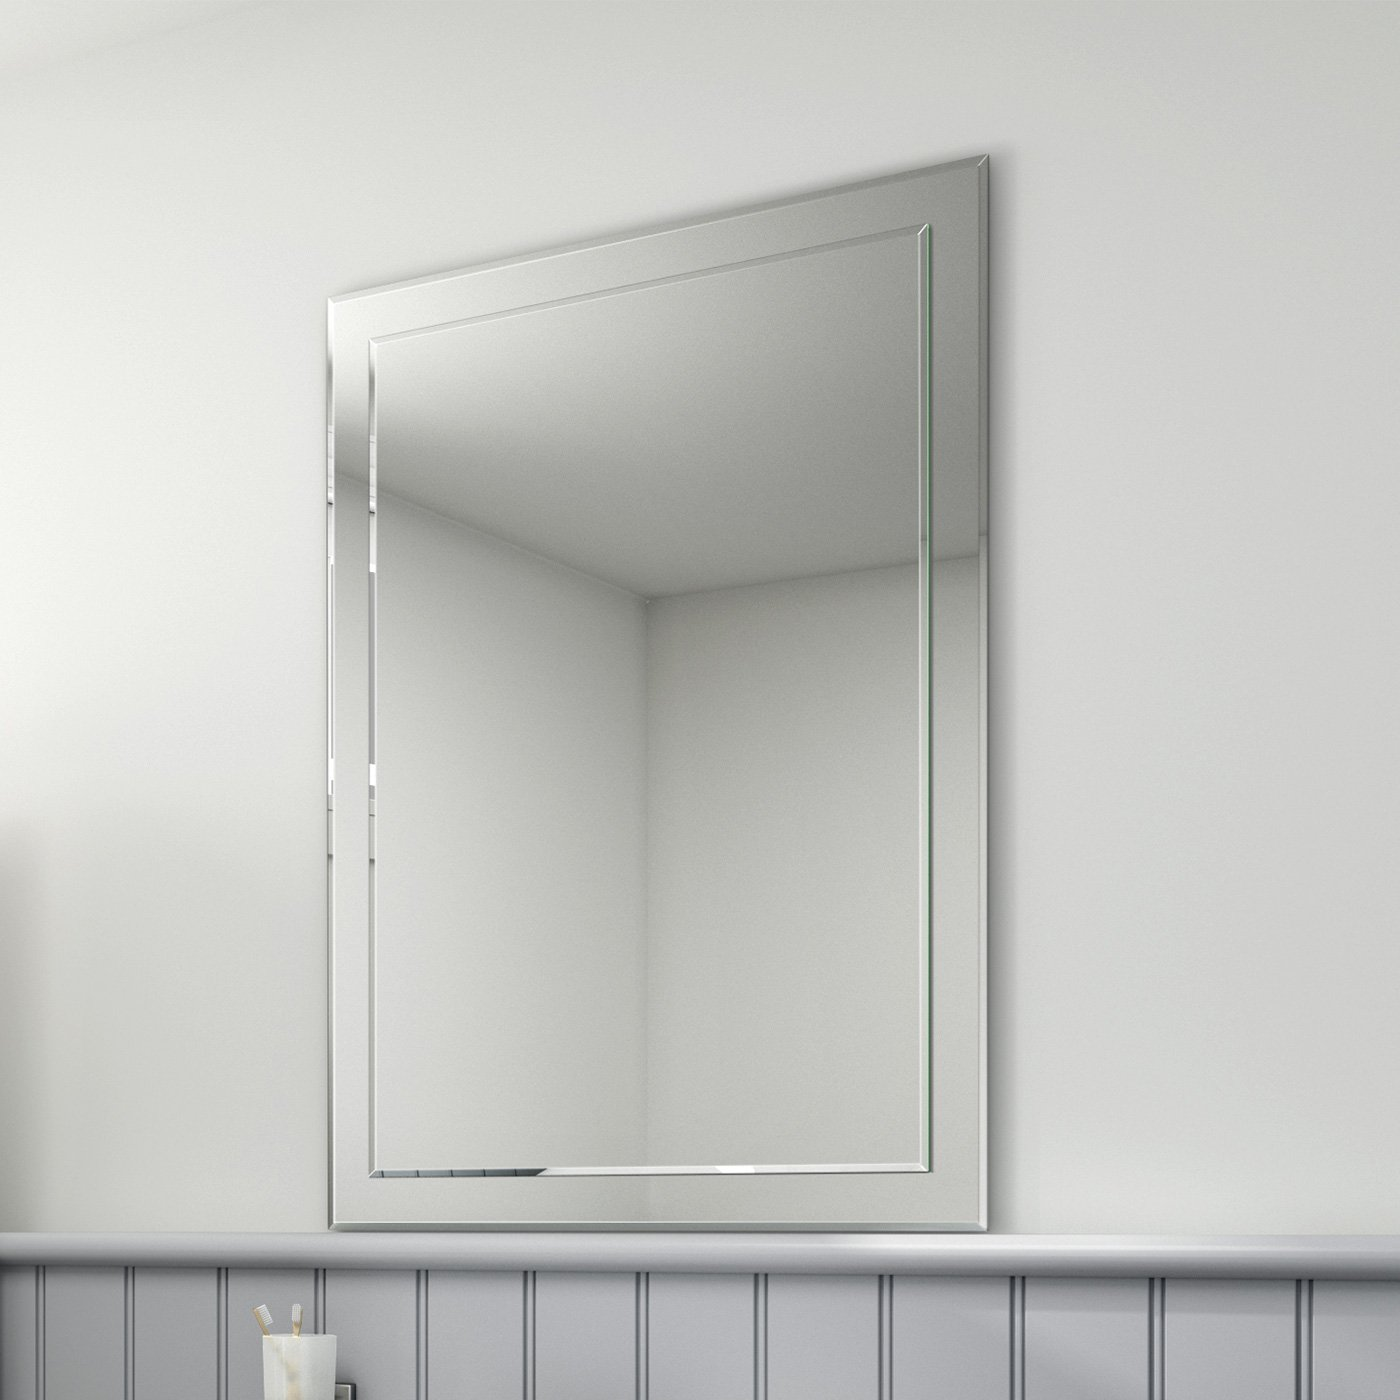 650 X 900 Mm Rectangular Bevelled Designer Bathroom Wall Mirror MC147